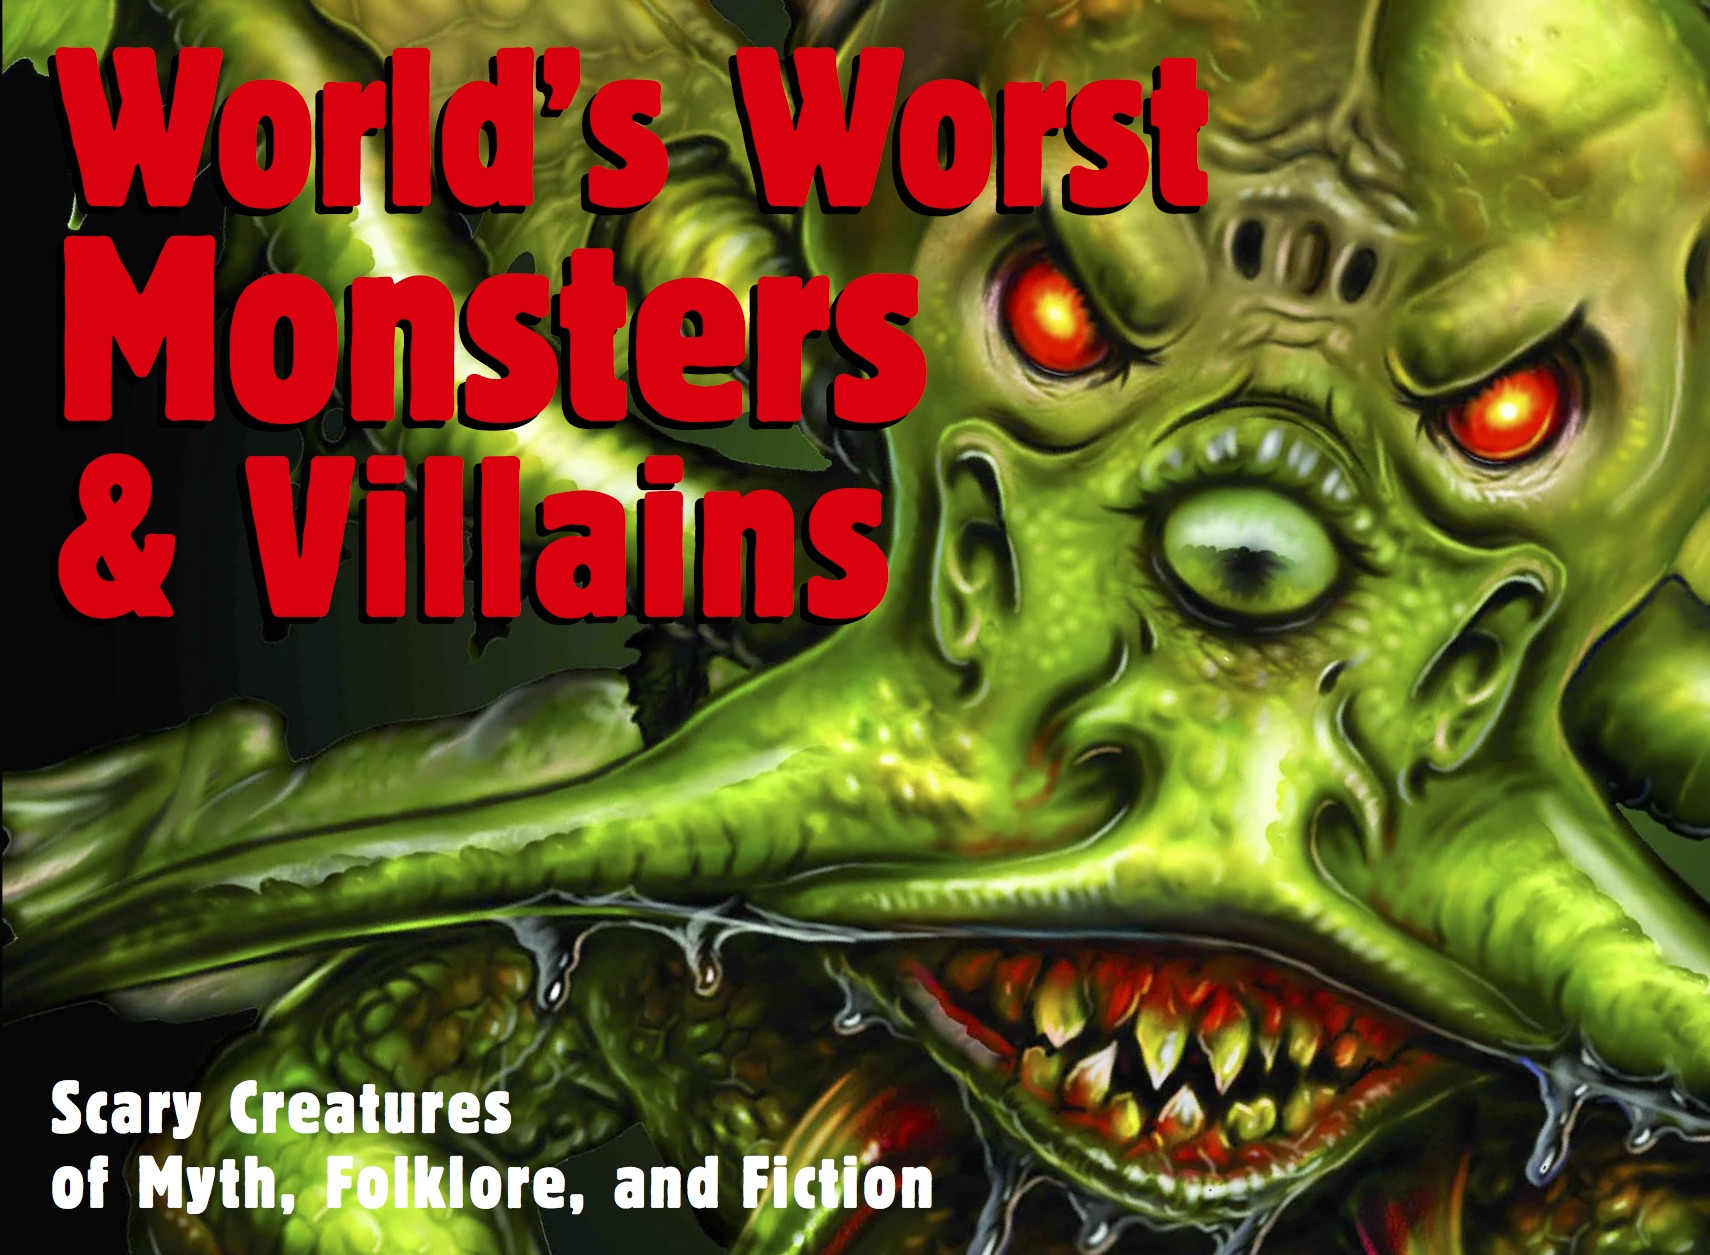 World's Worst Monsters & Villains